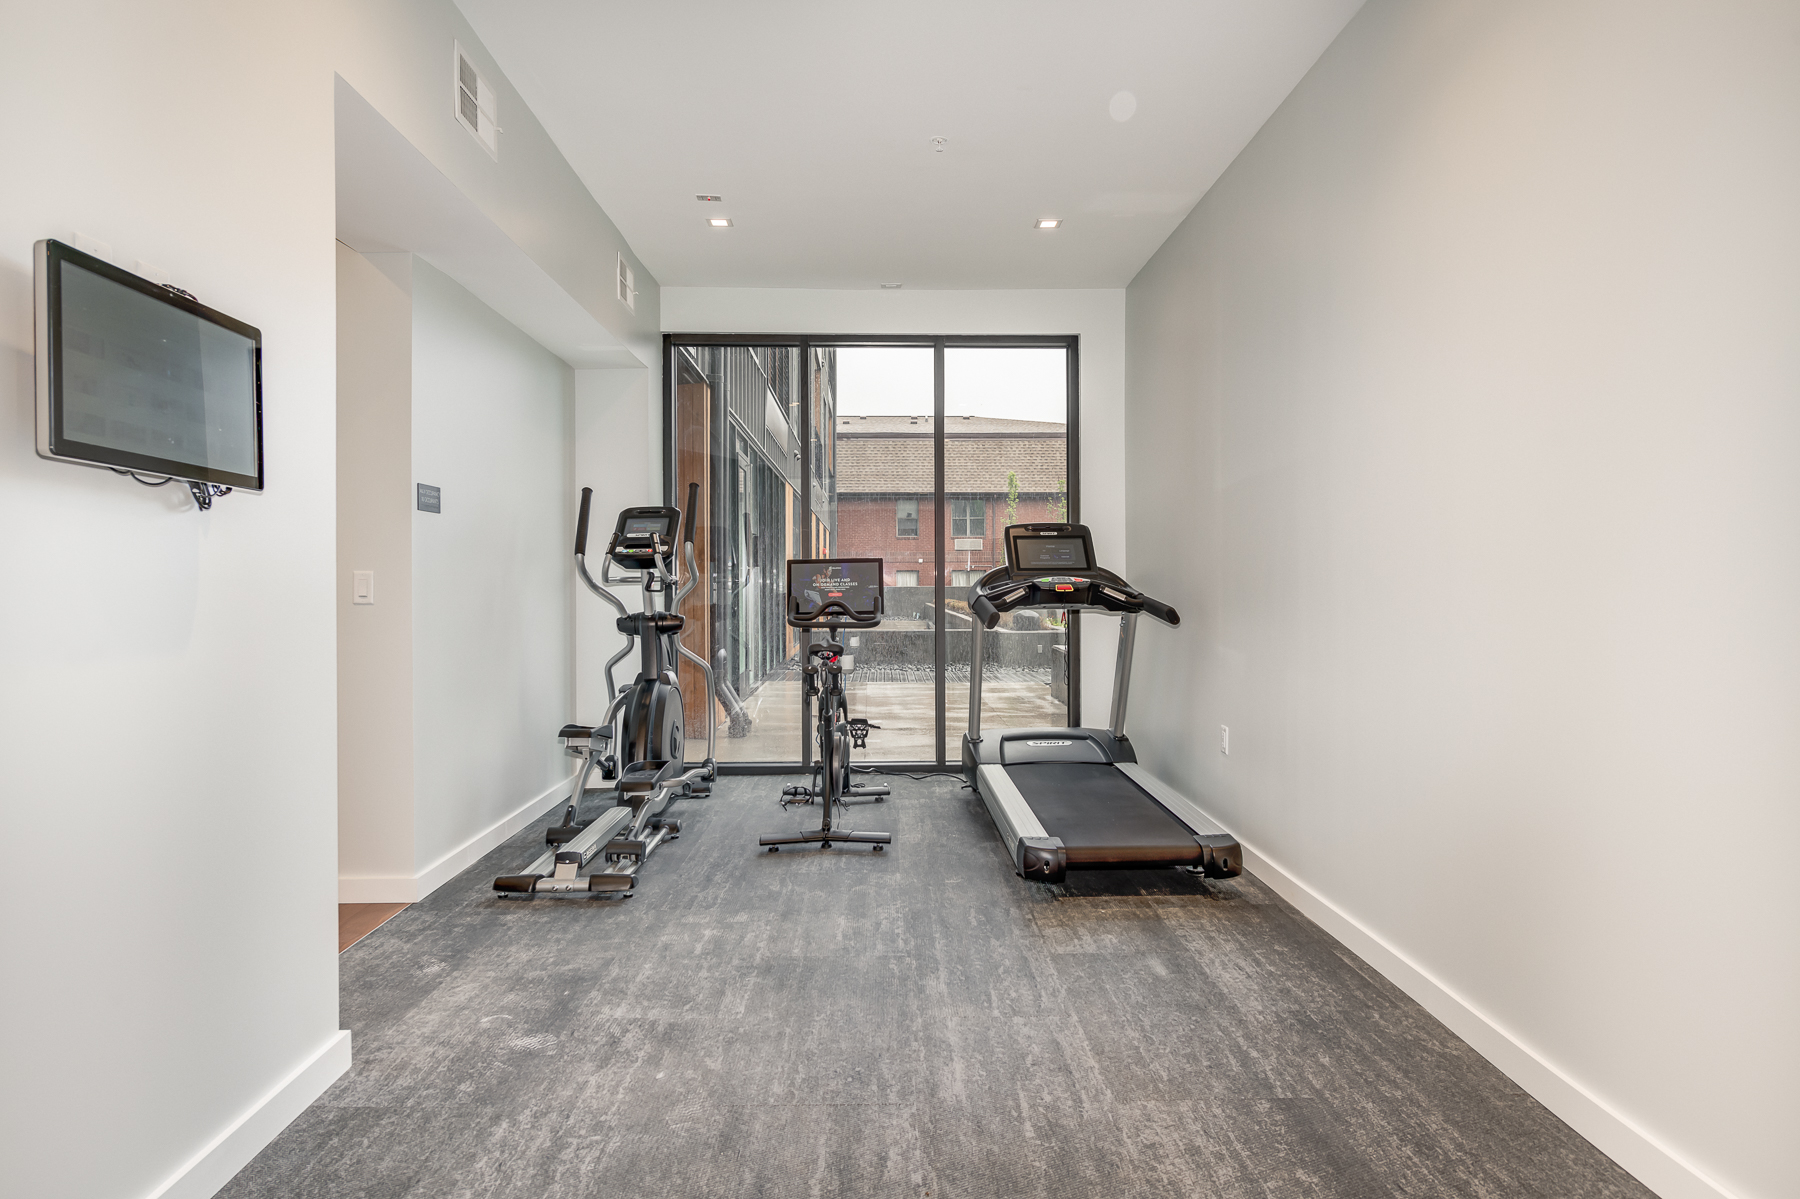 Additional photo for property listing at 4101 Laclede Ave # 211 St. Louis, Missouri 63108 United States